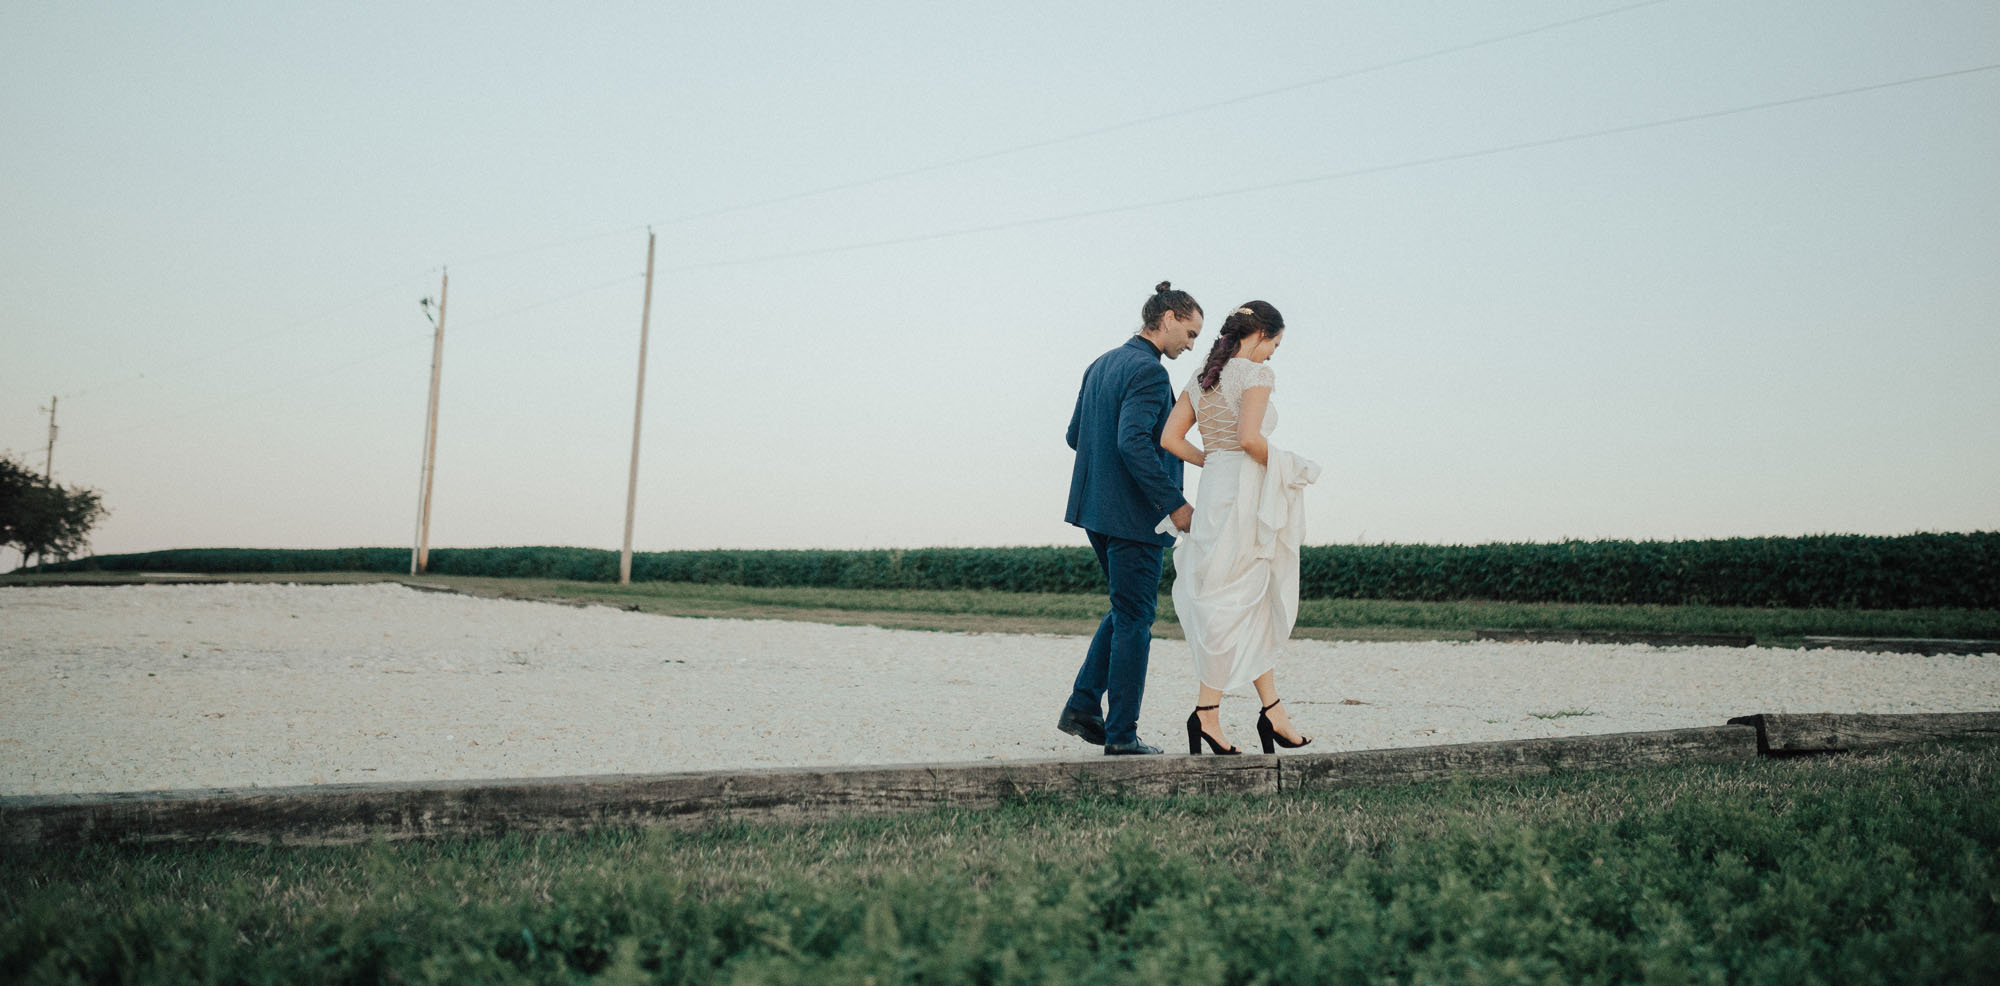 champaign_il_wedding_photography-0295.jpg